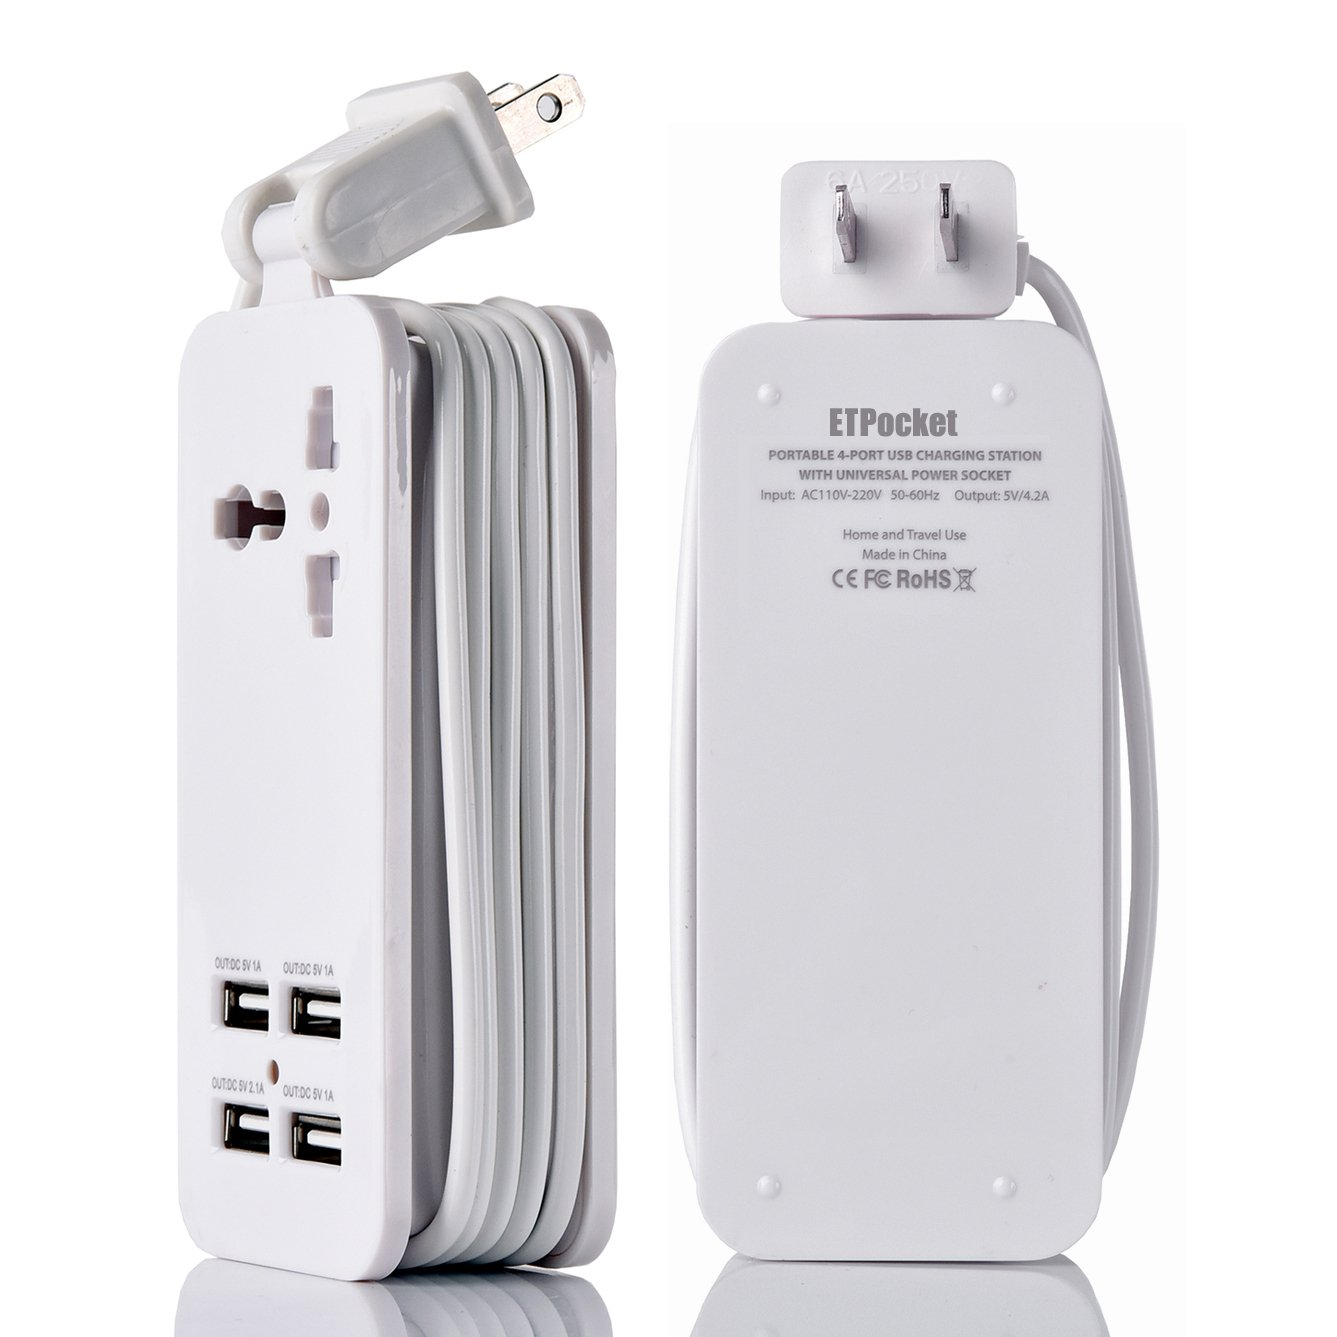 USB Power Strip Portable Travel Charger Outlets 2.1AMP 1AMP 21W 5Foot Power Supply Cord With Universal Plug Input From 100v-240v Power Sockets USB Charger Station 4 Port 5v 1A/2.1A USB Charger (White) by ETPocket (Image #3)